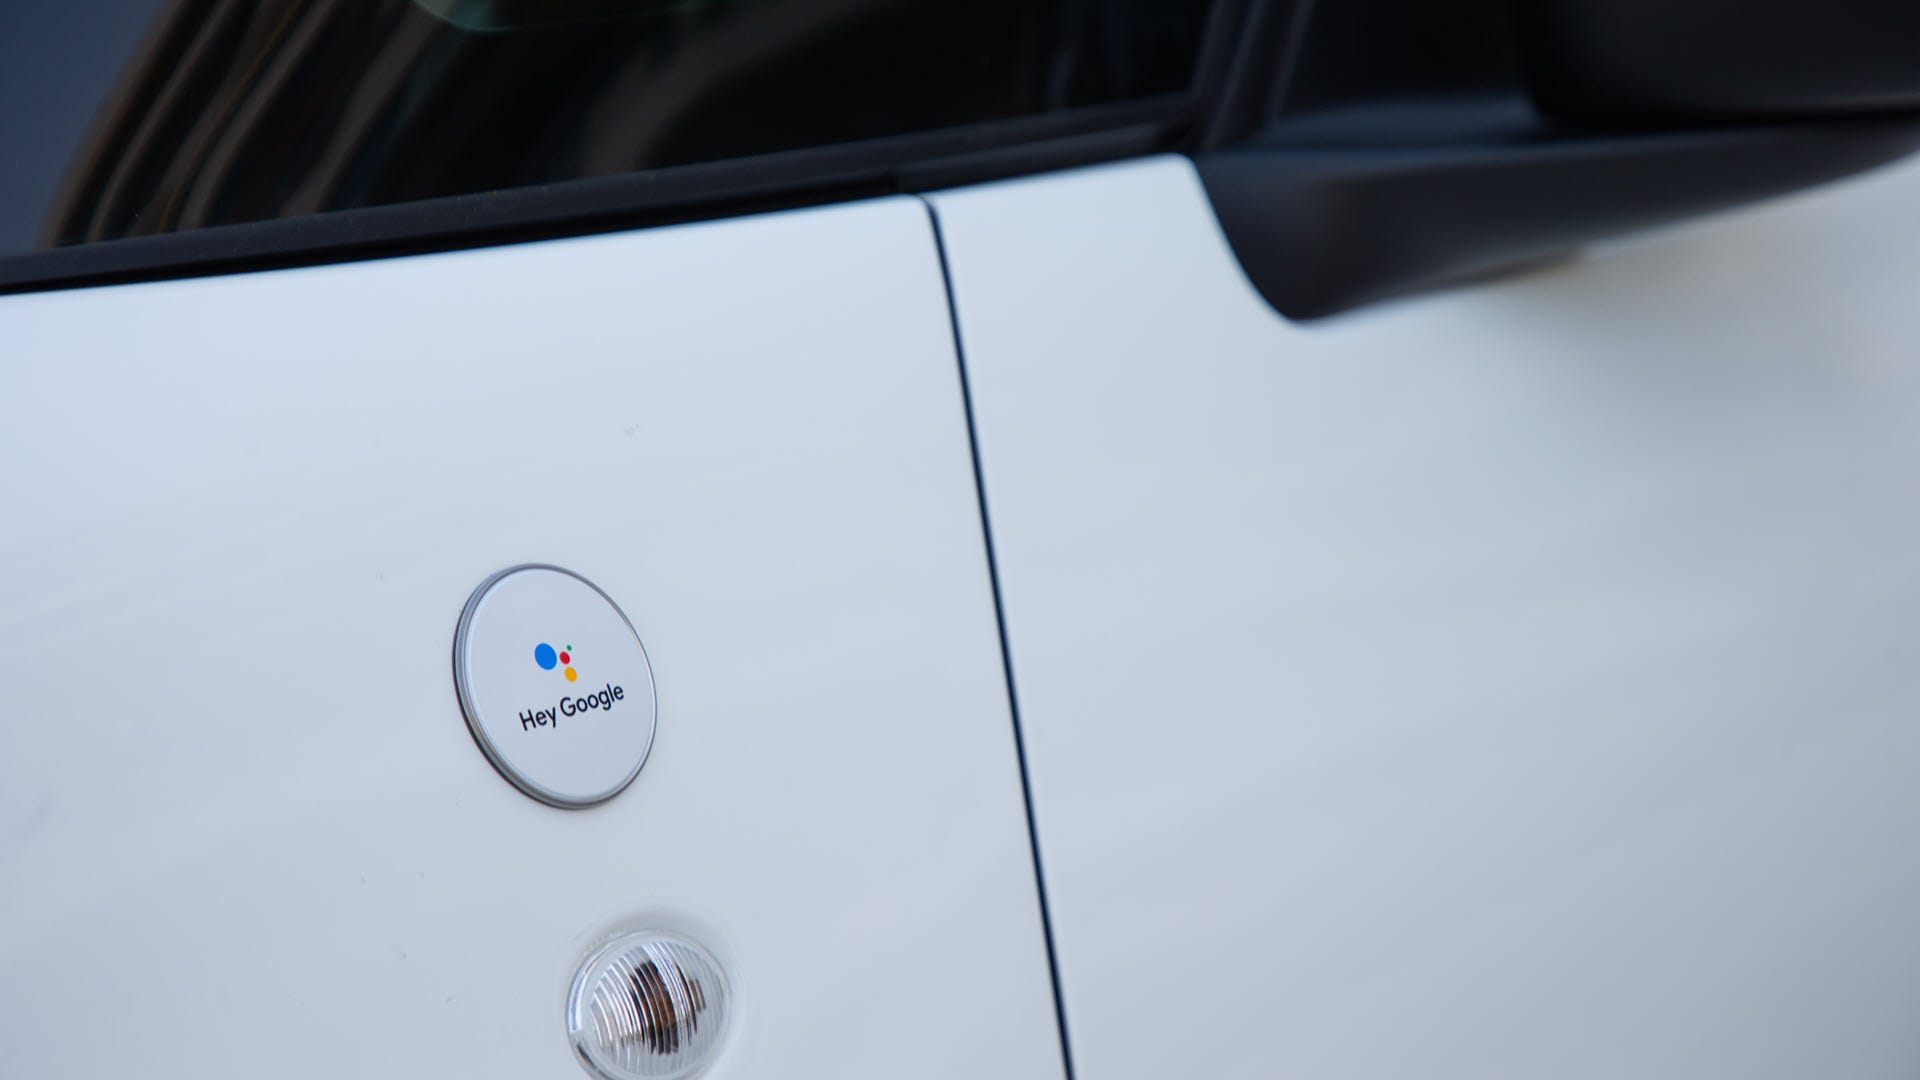 The side of a Fiat with a Hey Google badge